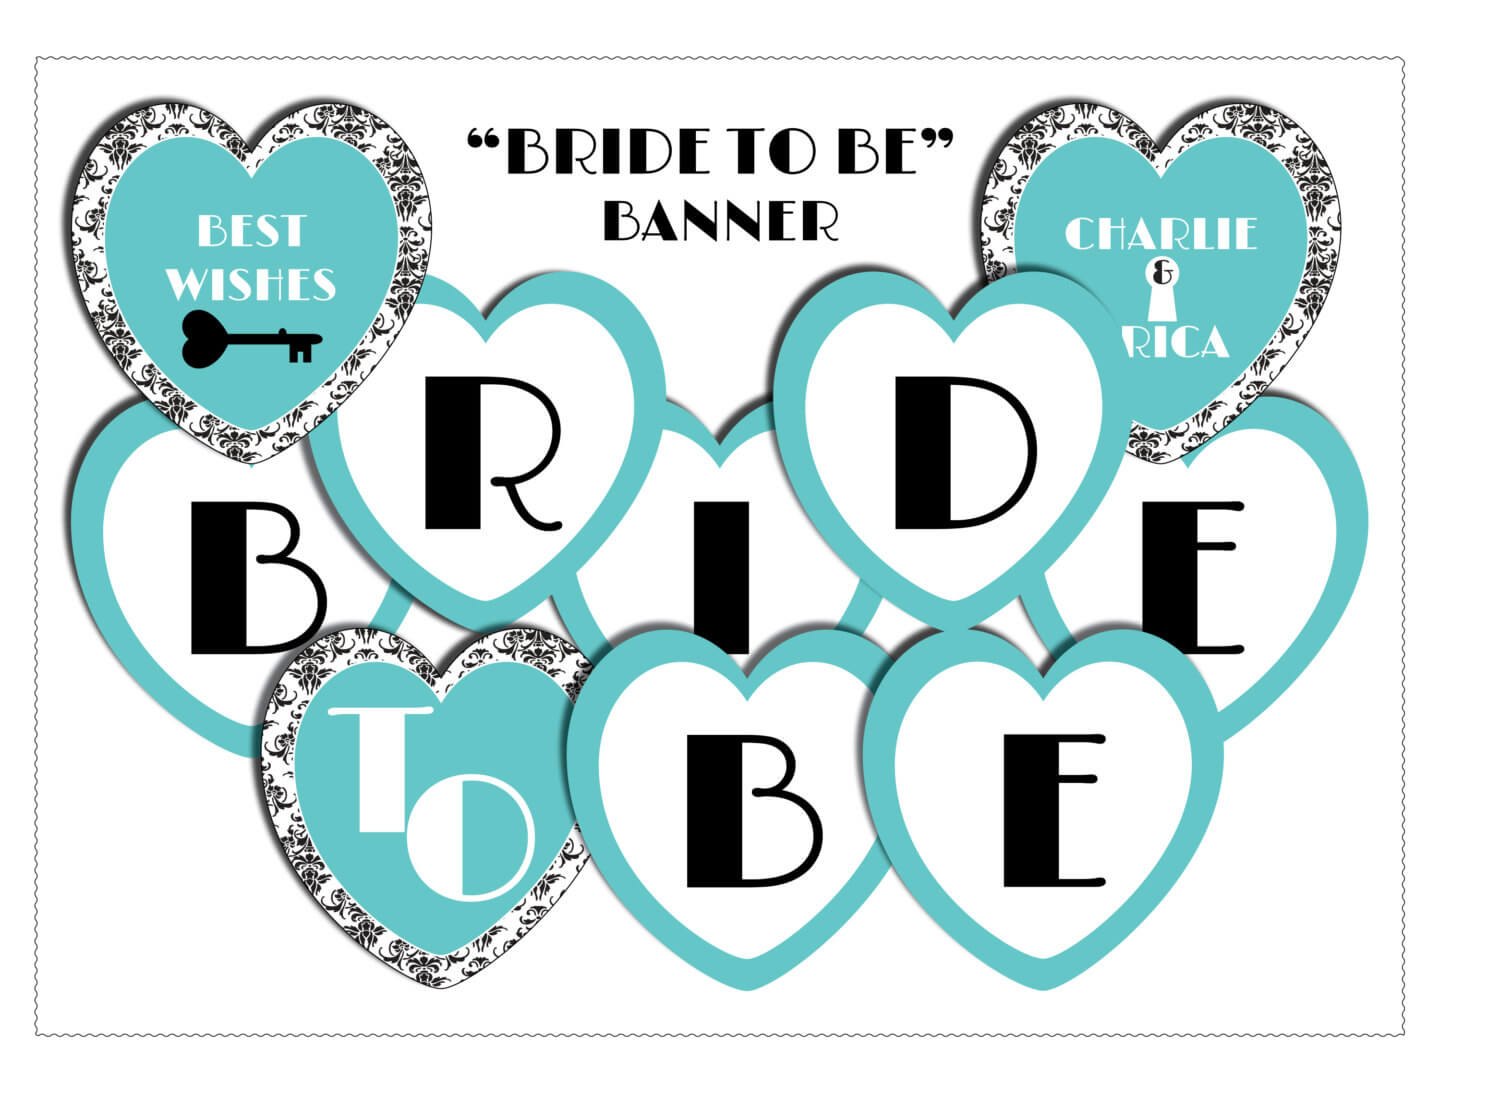 11 Best Photos Of Bride To Be Banner Template – Diy Bridal Intended For Bride To Be Banner Template